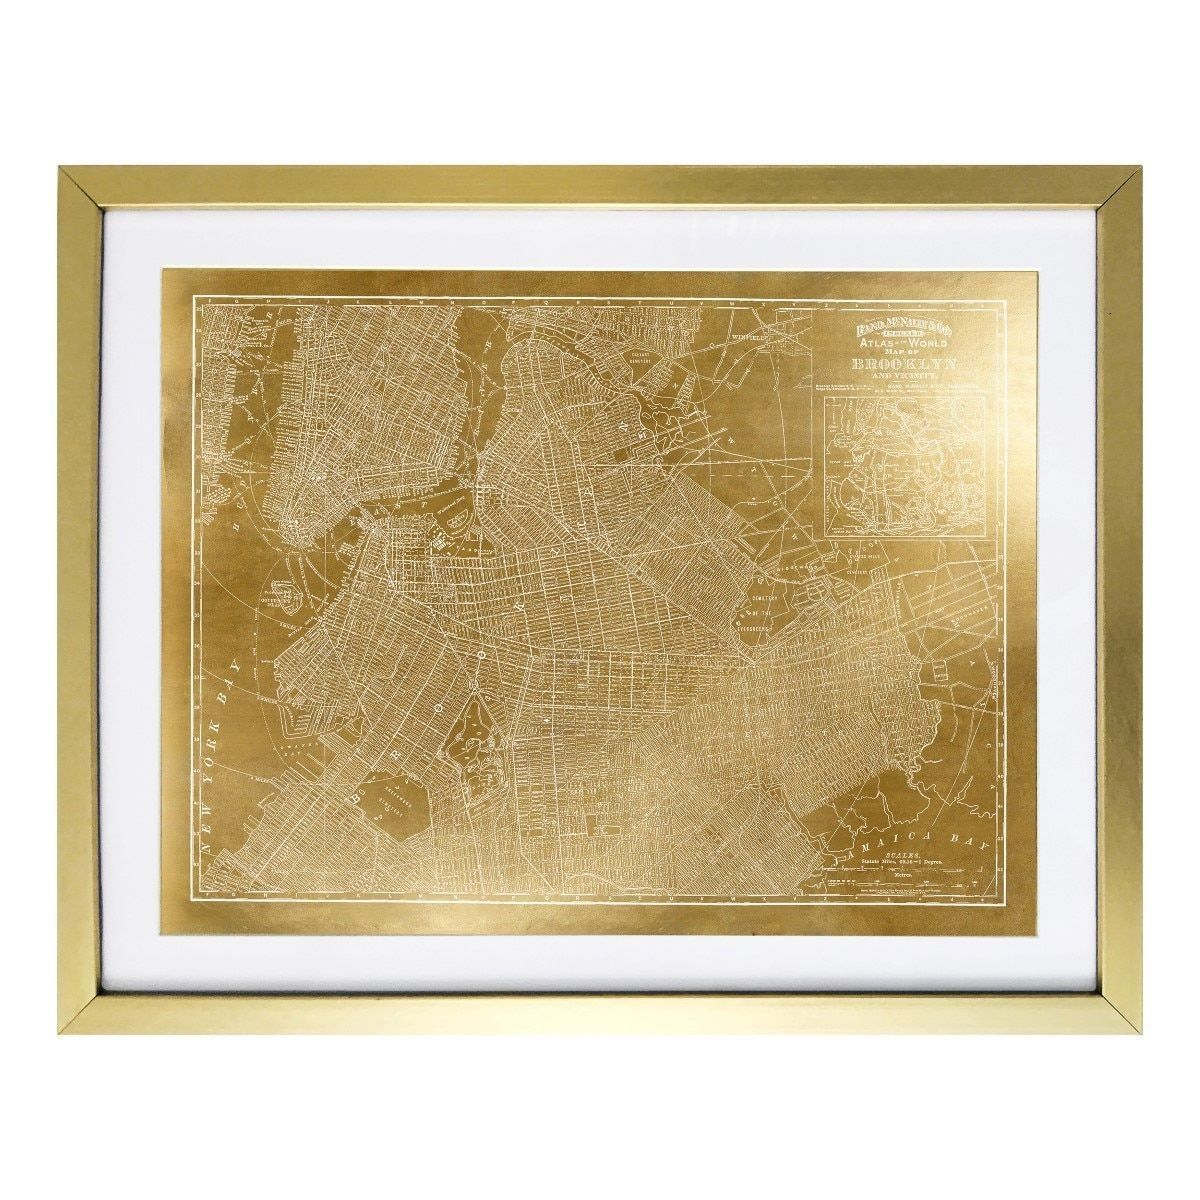 Wynwood studio brooklyn map 1891 foil framed art products wynwood studio brooklyn map 1891 foil framed art gumiabroncs Image collections